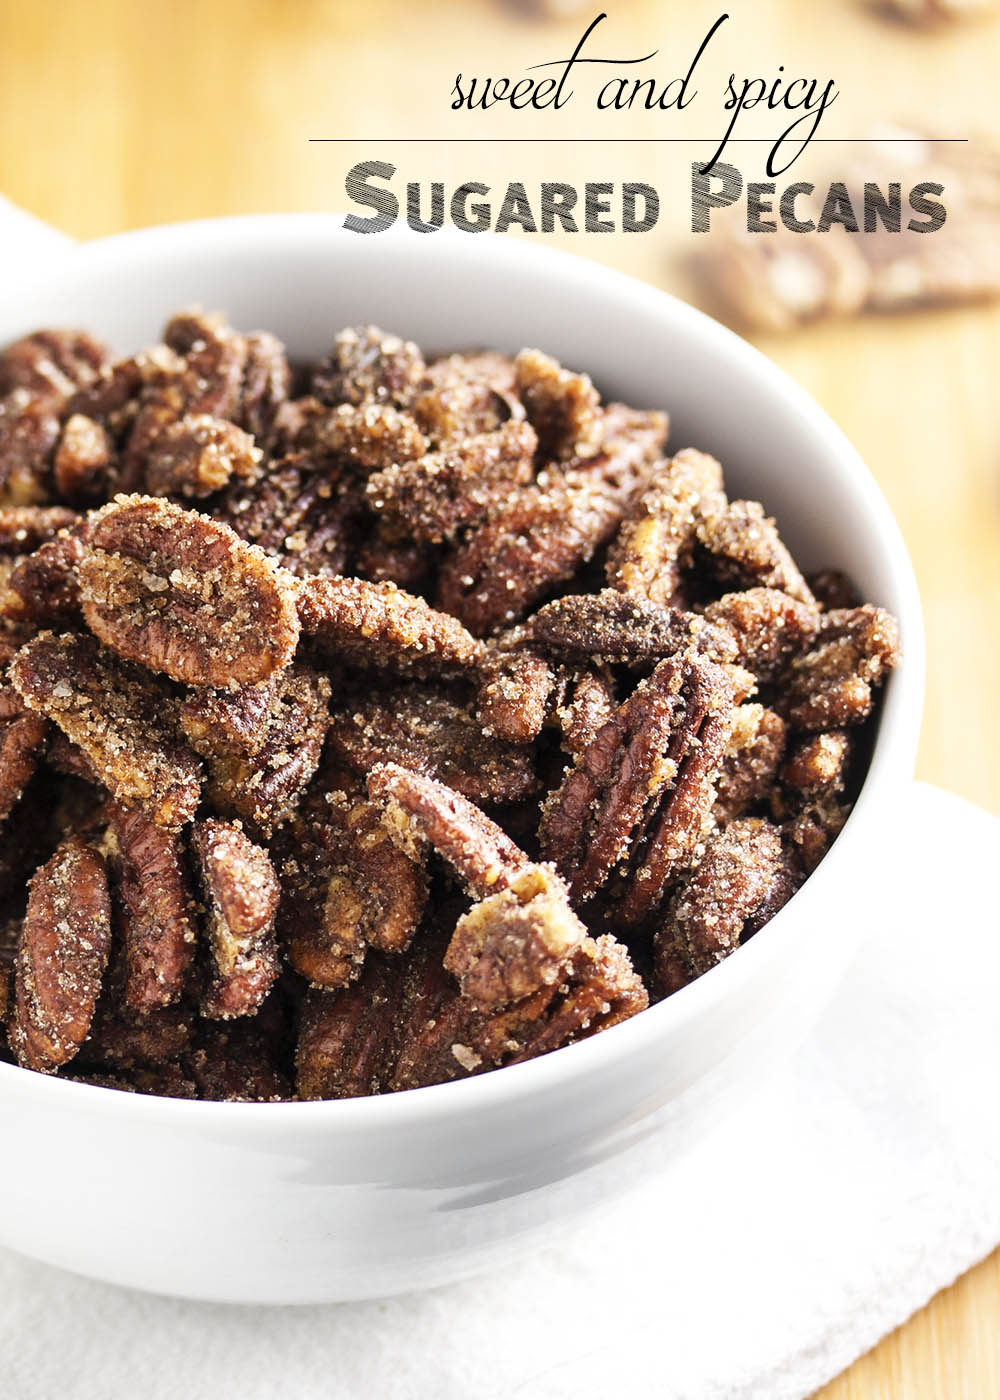 Sweet and Spicy Sugared Pecans - Just 10 minutes and you'll have this addictive sweet and spicy snack on hand. Sugared pecans are great for parties, for gifts, or simply for munching. | justalittlebitofbacon.com